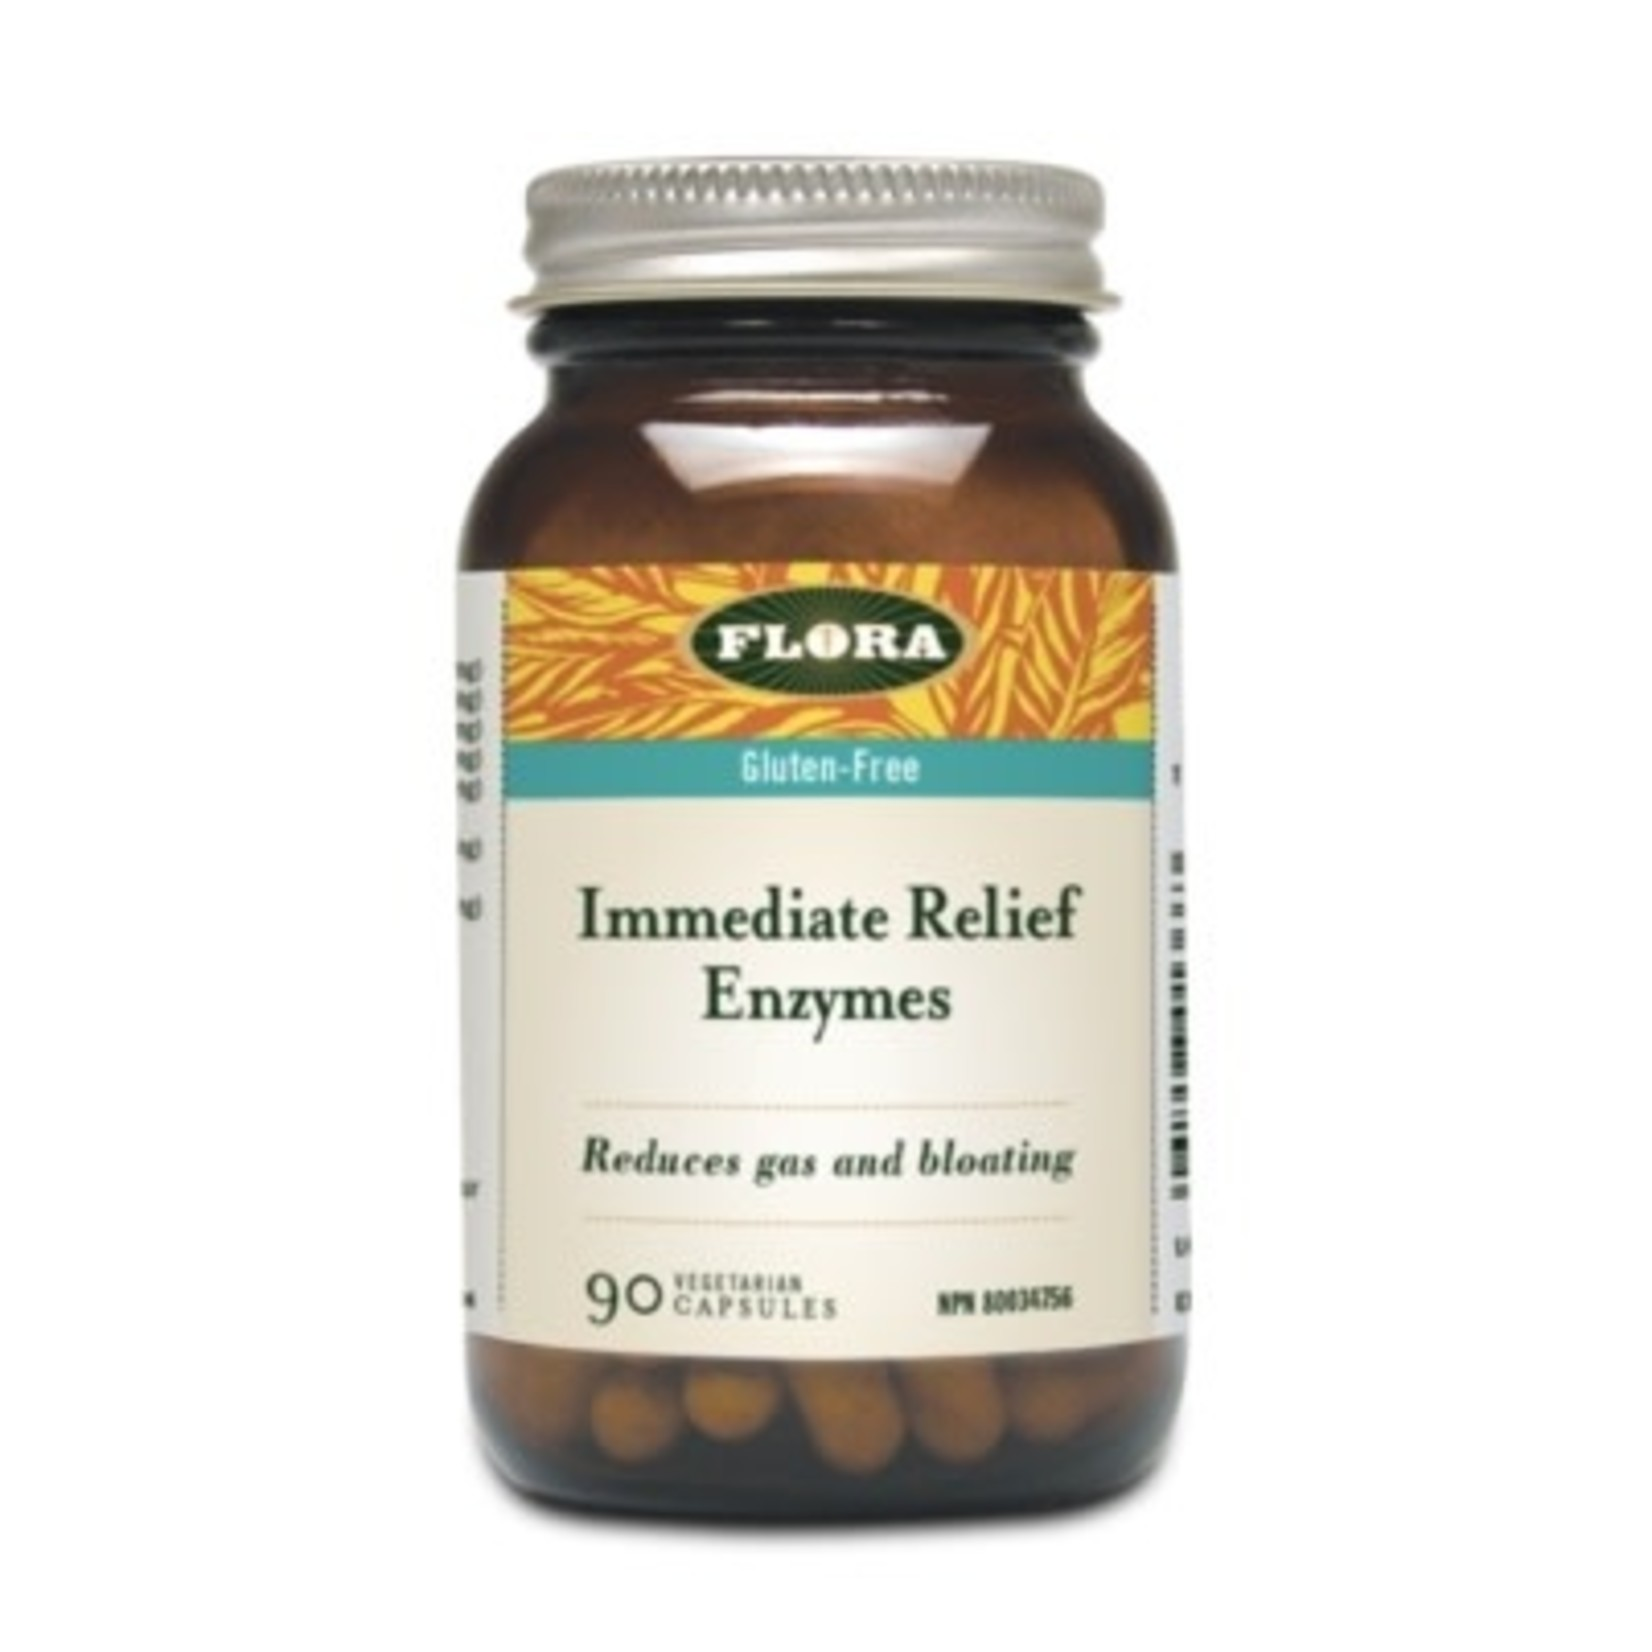 Flora Flora Immediate Relief Enzymes 90 caps